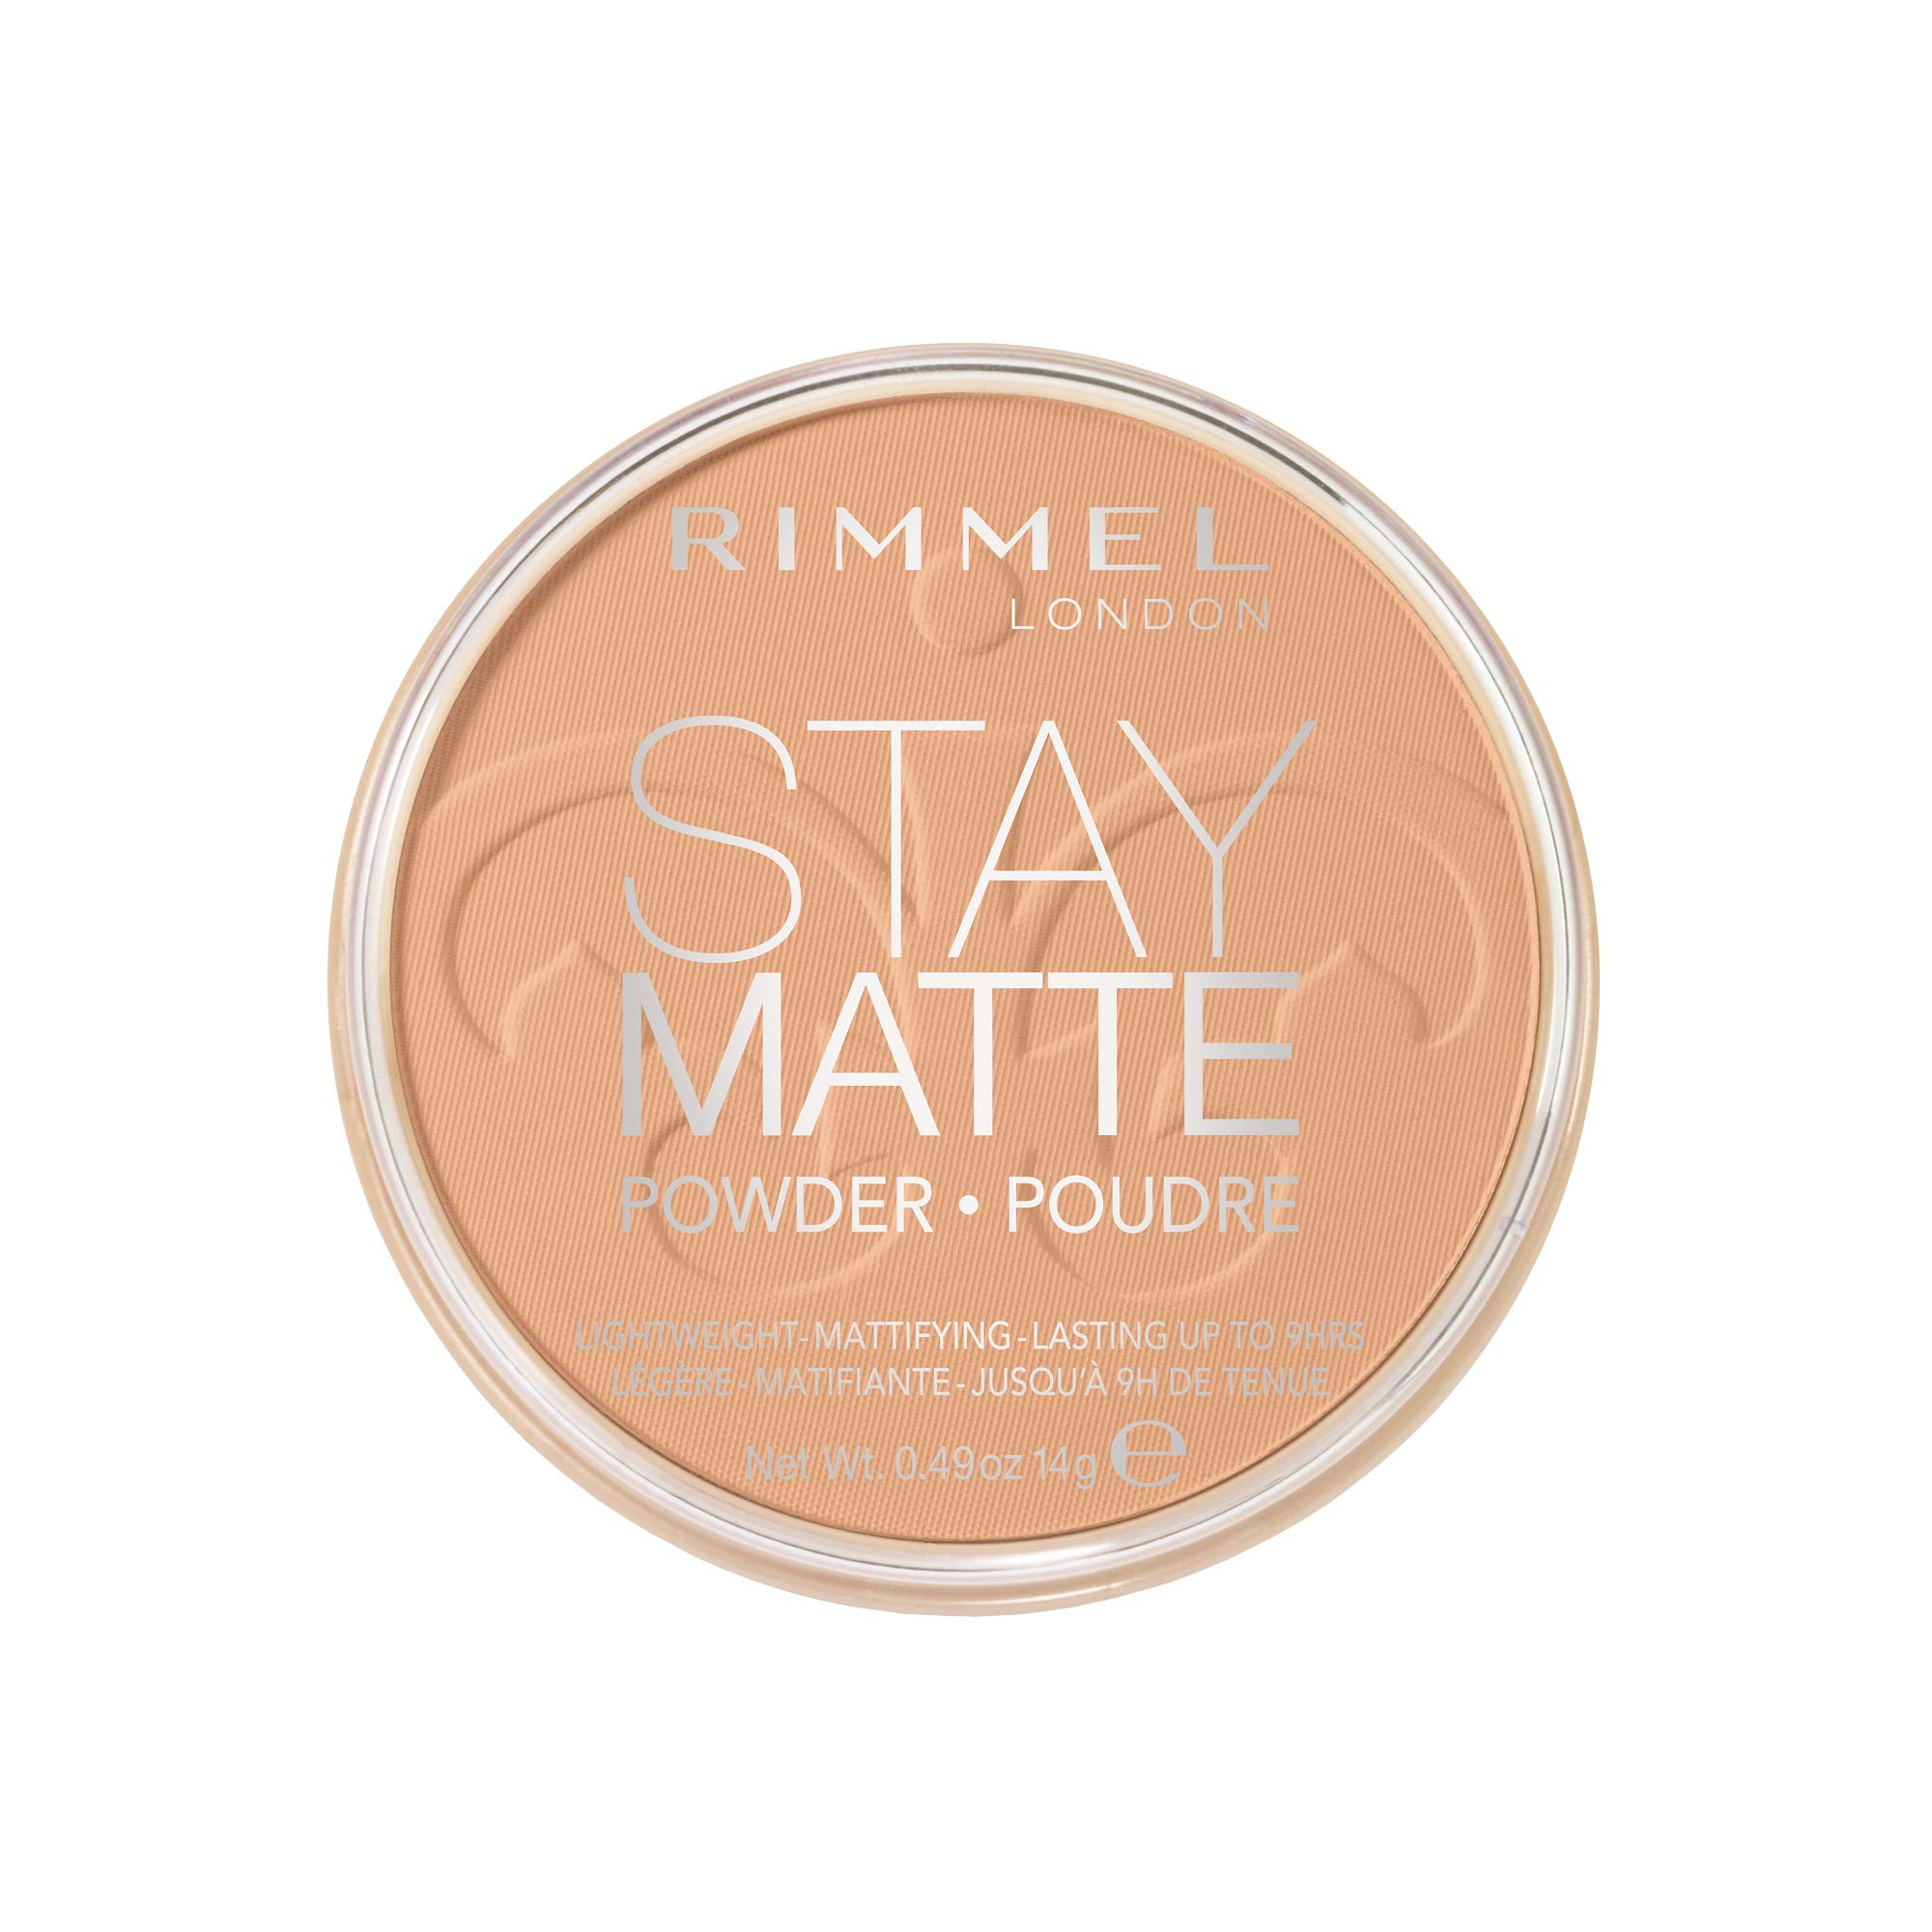 Stay Matte Pressed Powder in 016 Deep Beige, 0.49 Ounce (Pack of 1)